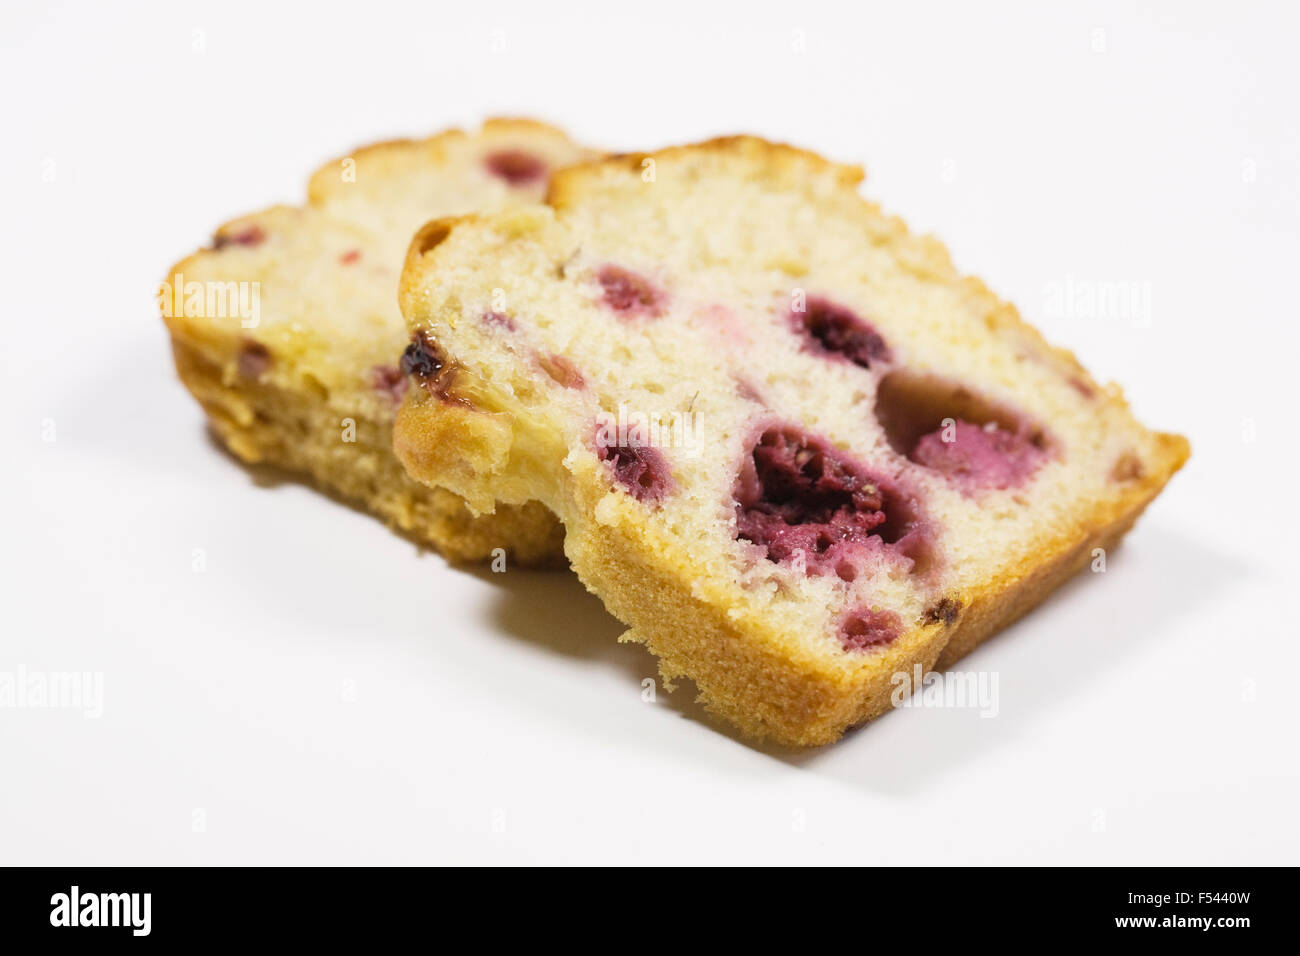 Two slices of homemade raspberry and lemon loaf cake. - Stock Image